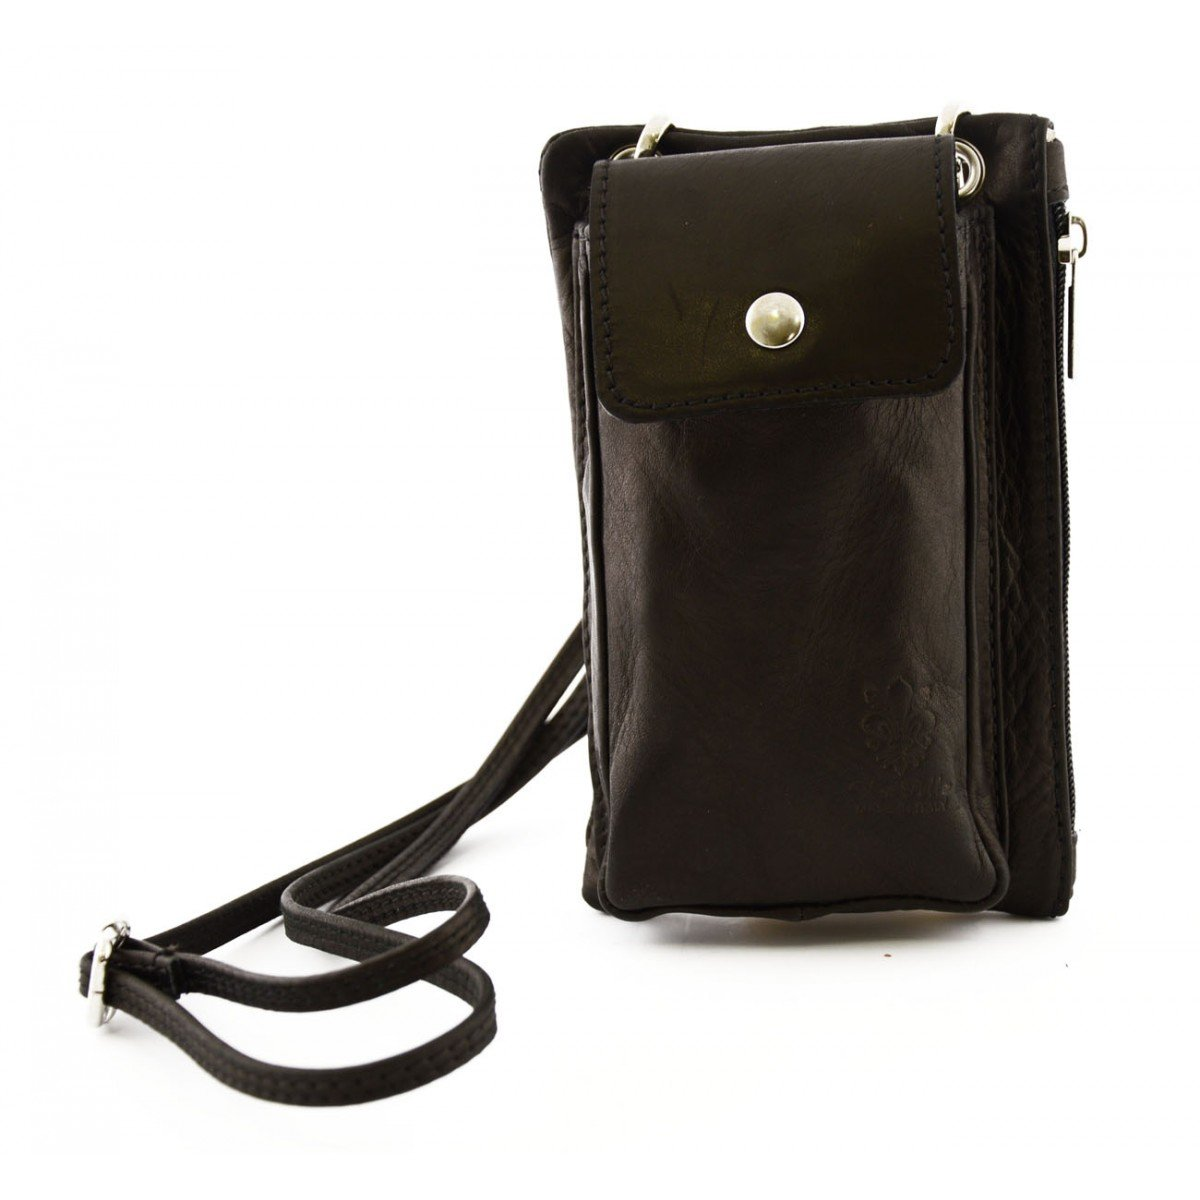 Dream Leather Bags Made in Italy Genuine Leather Mini Unisex Pouch with Pocket for Smartphone Color Cognac